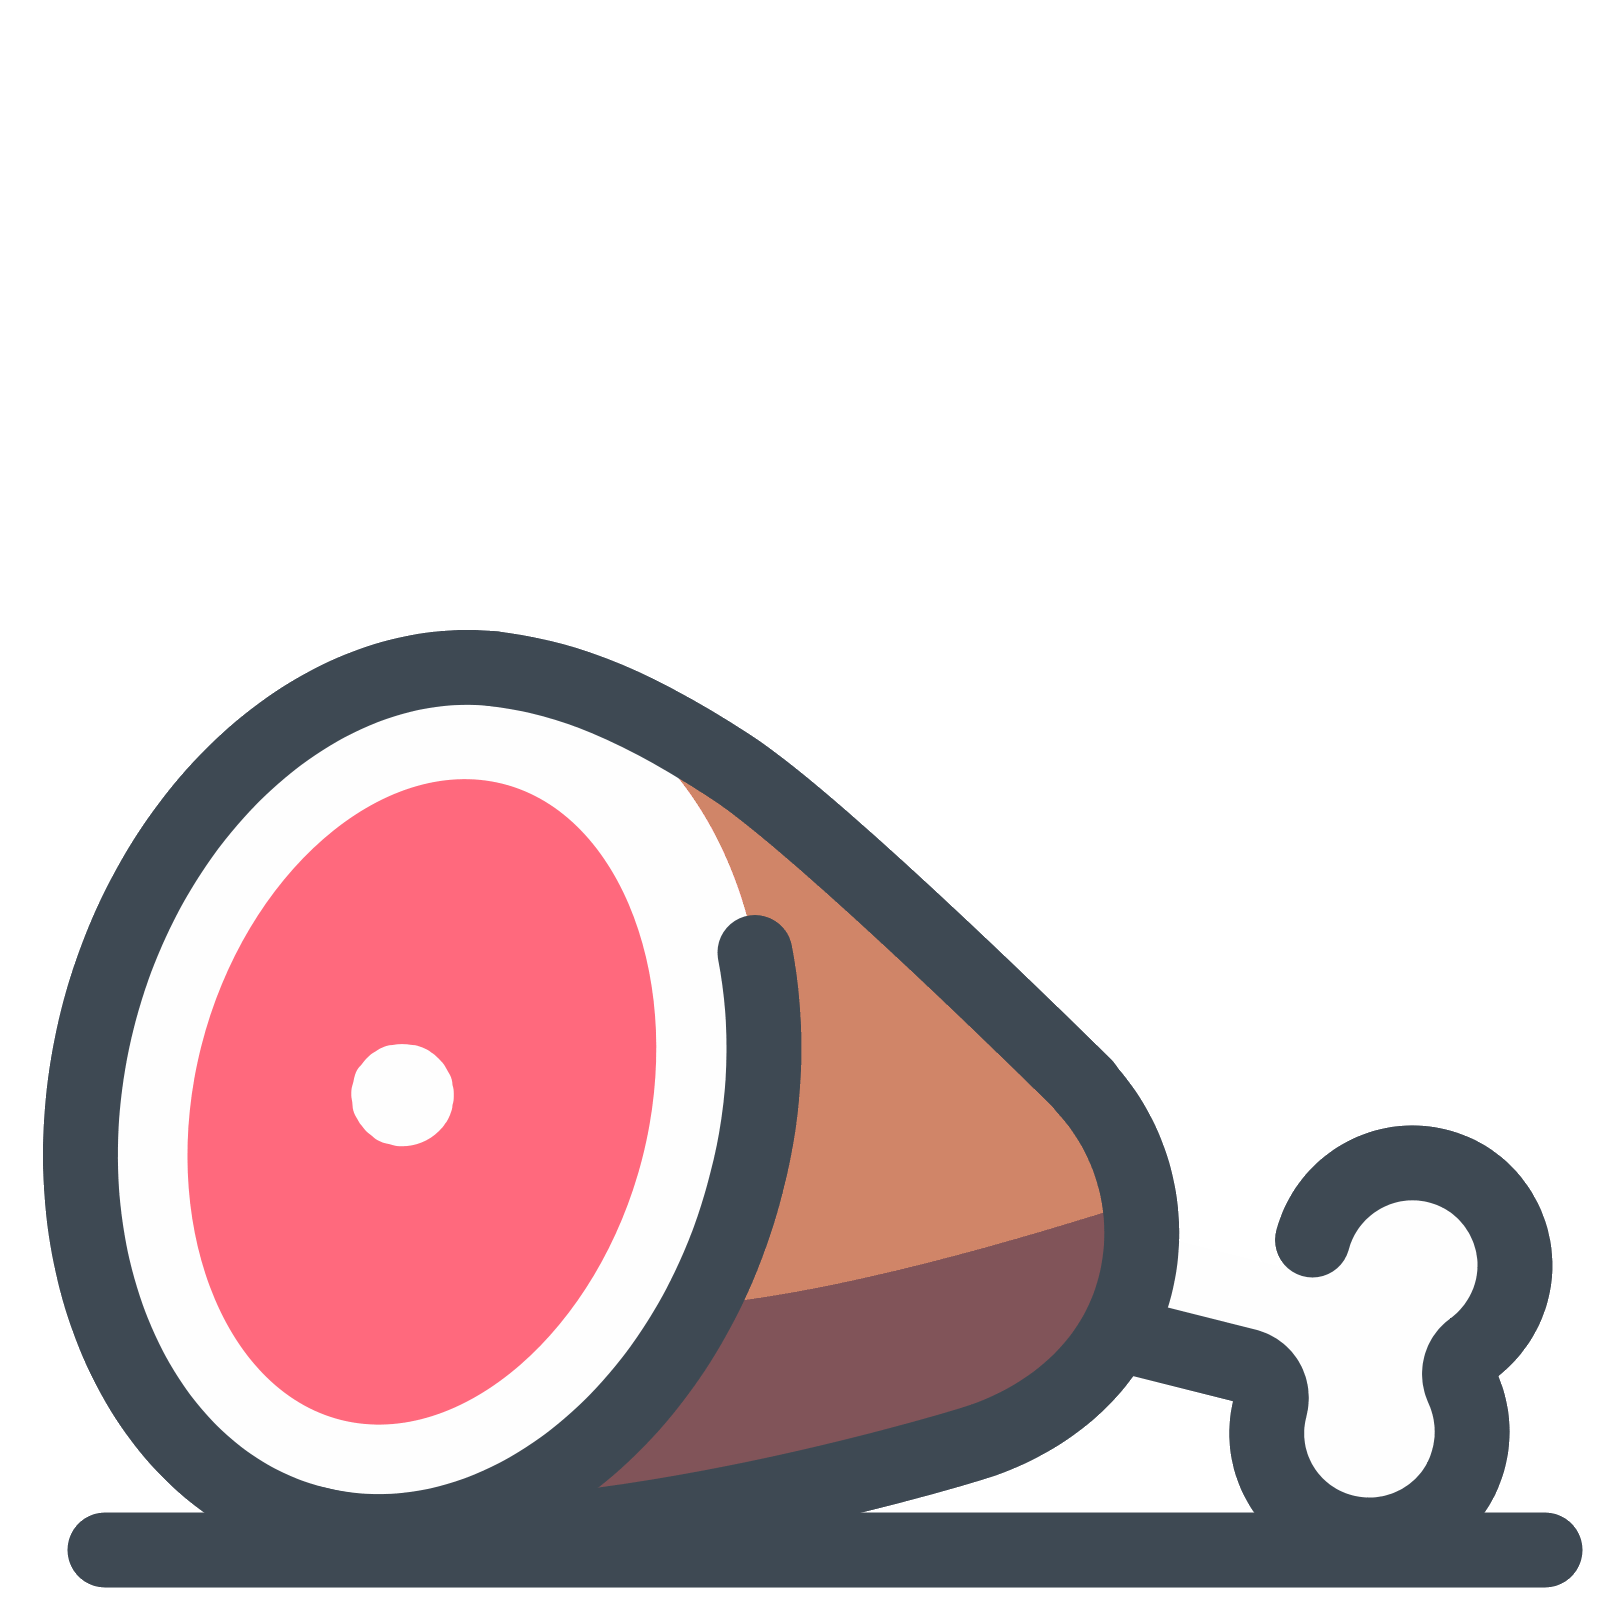 Ham vector. Icon free download png